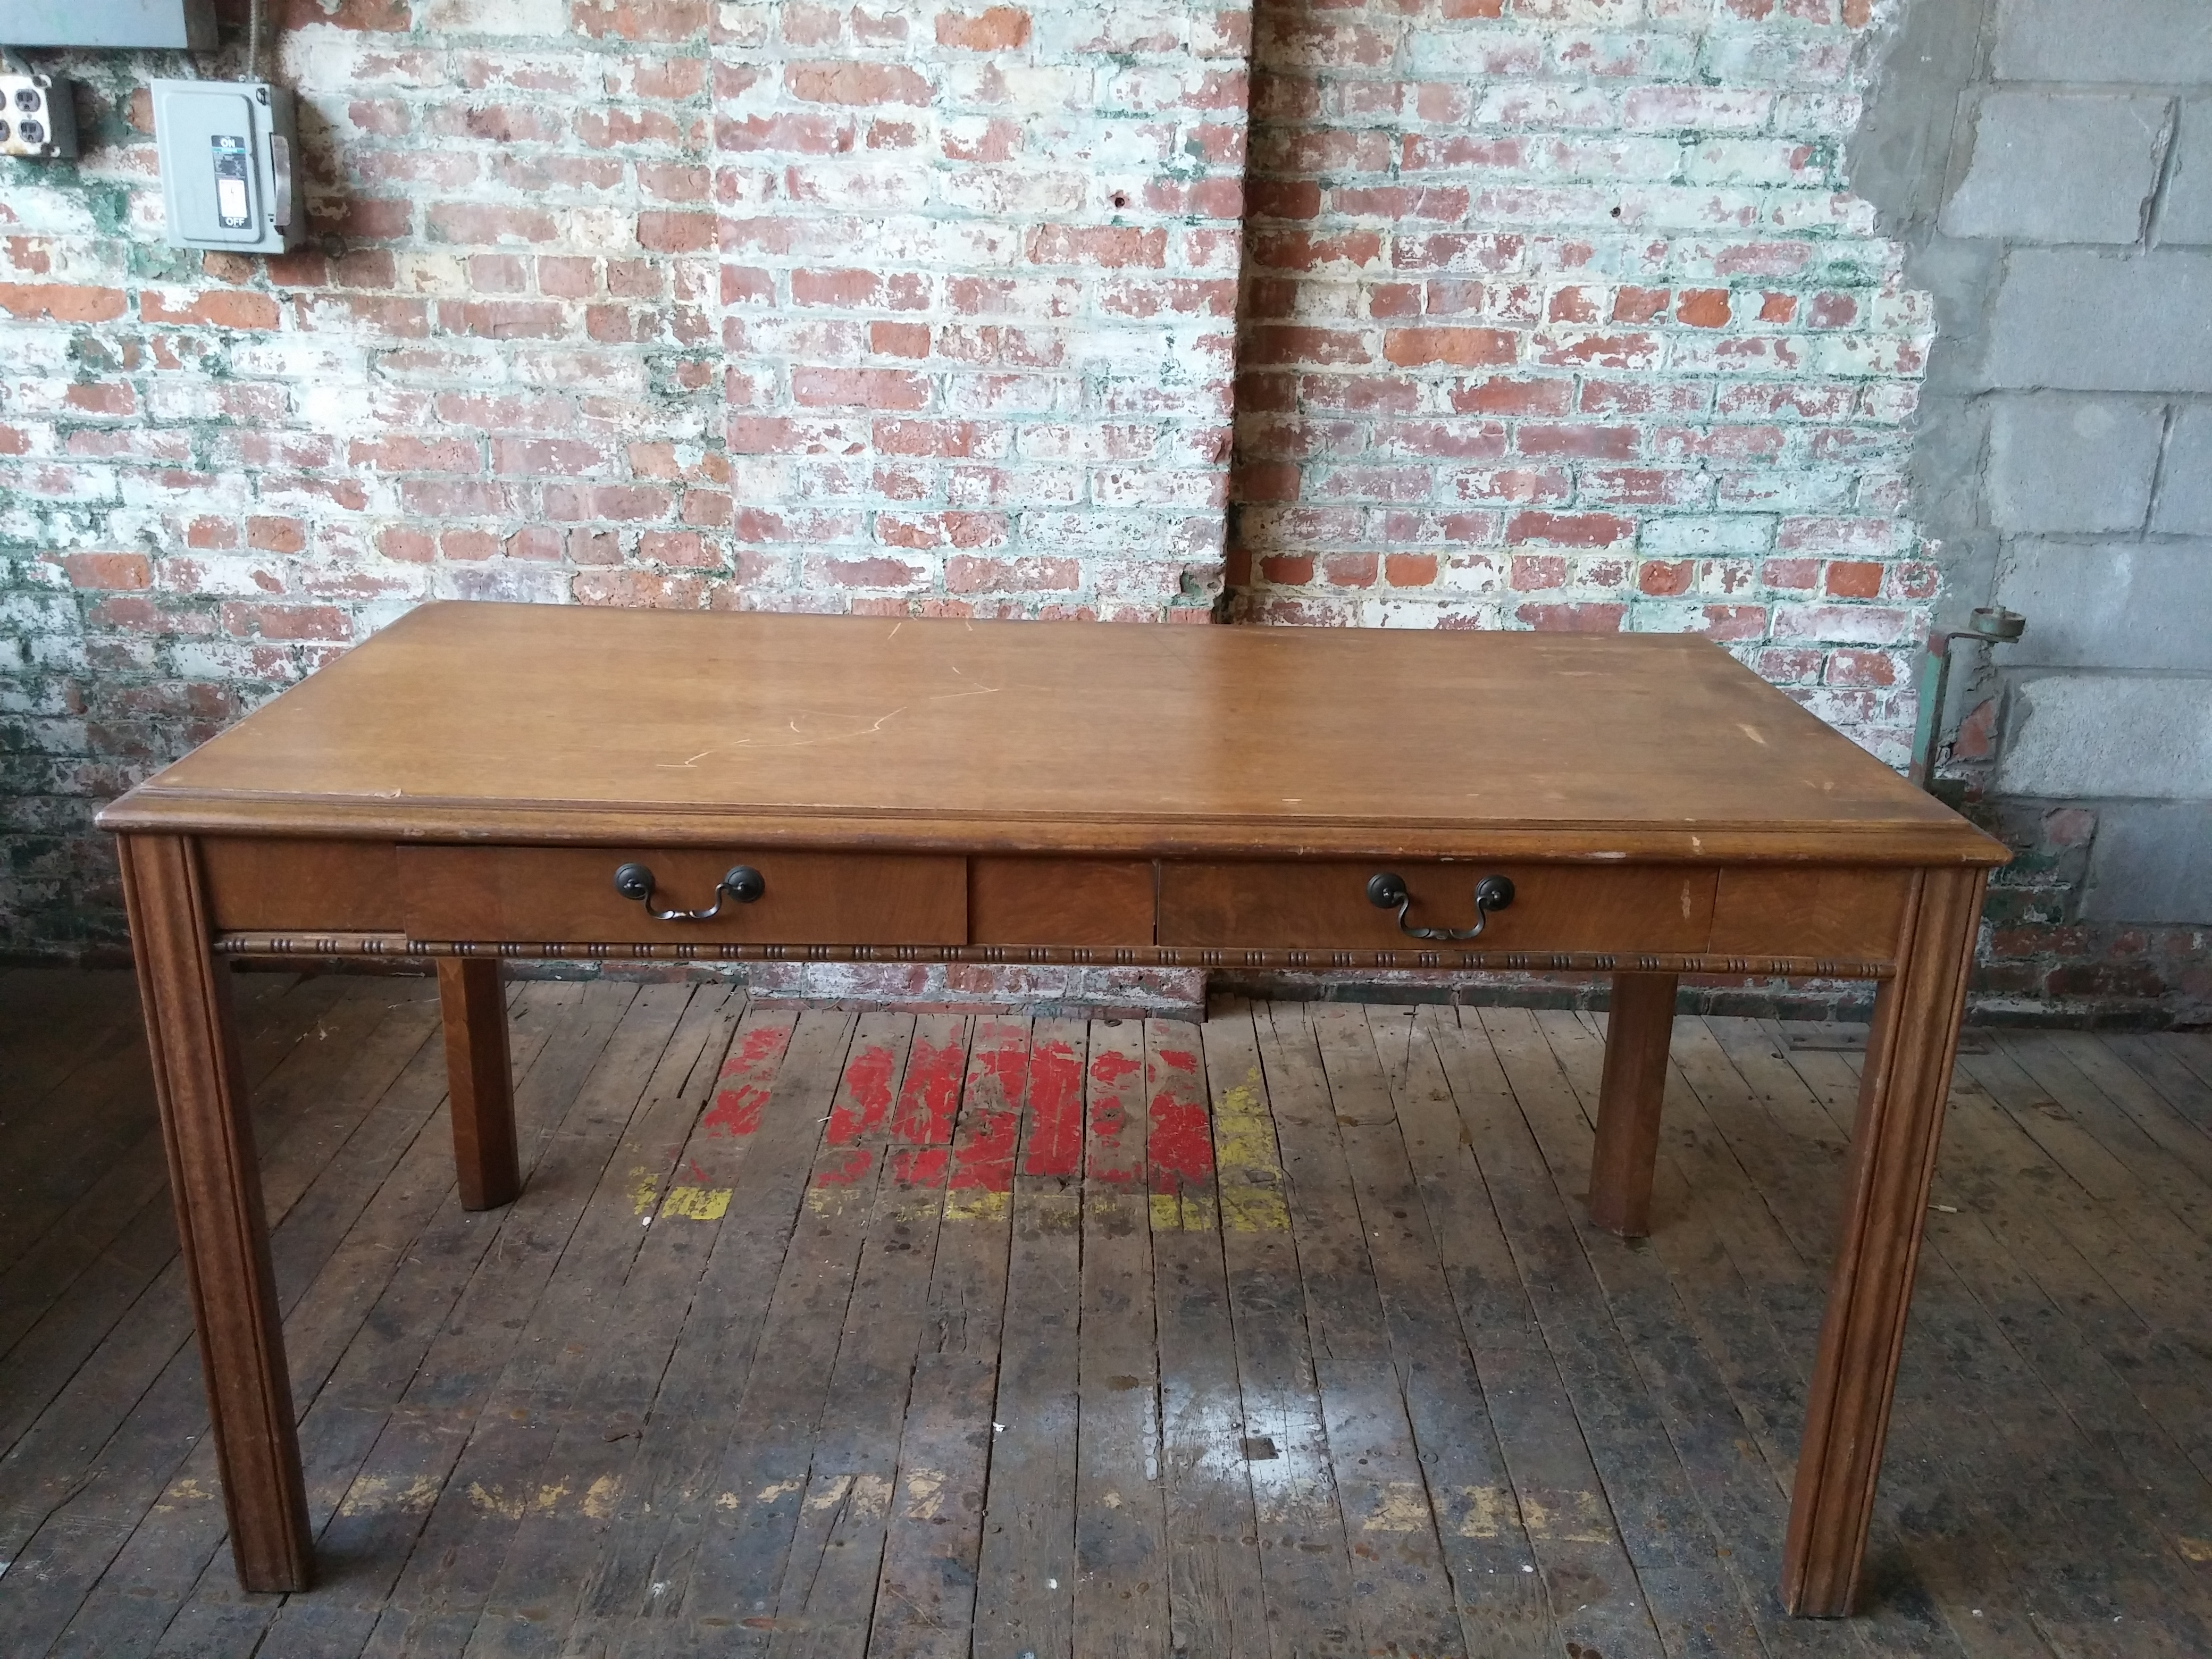 55A. Courtroom Table 30x60